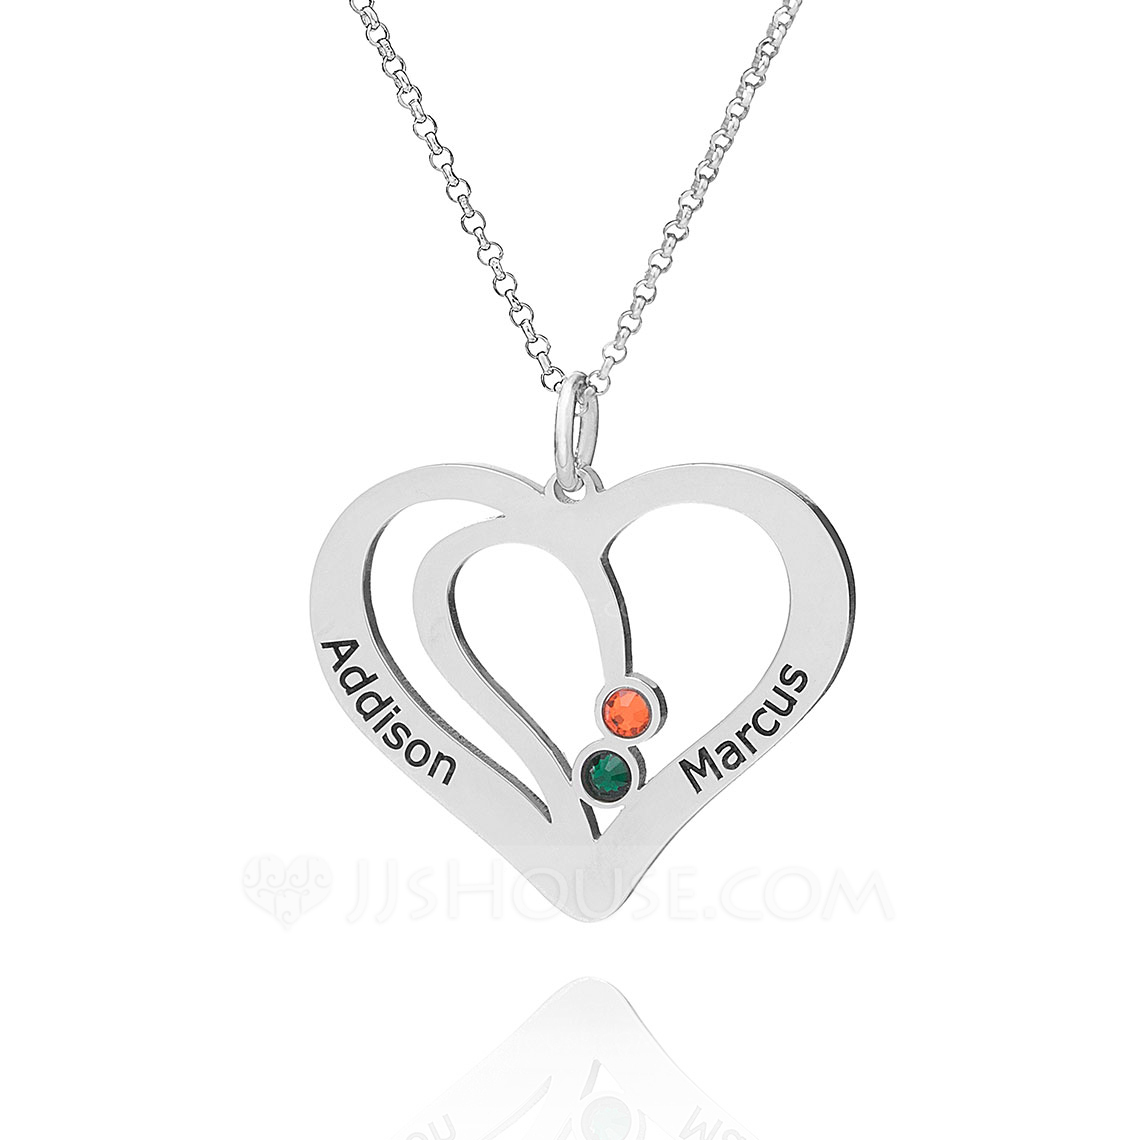 Custom Sterling Silver Double Overlapping Two Heart Necklace Birthstone Necklace With Diamond - Christmas Gifts